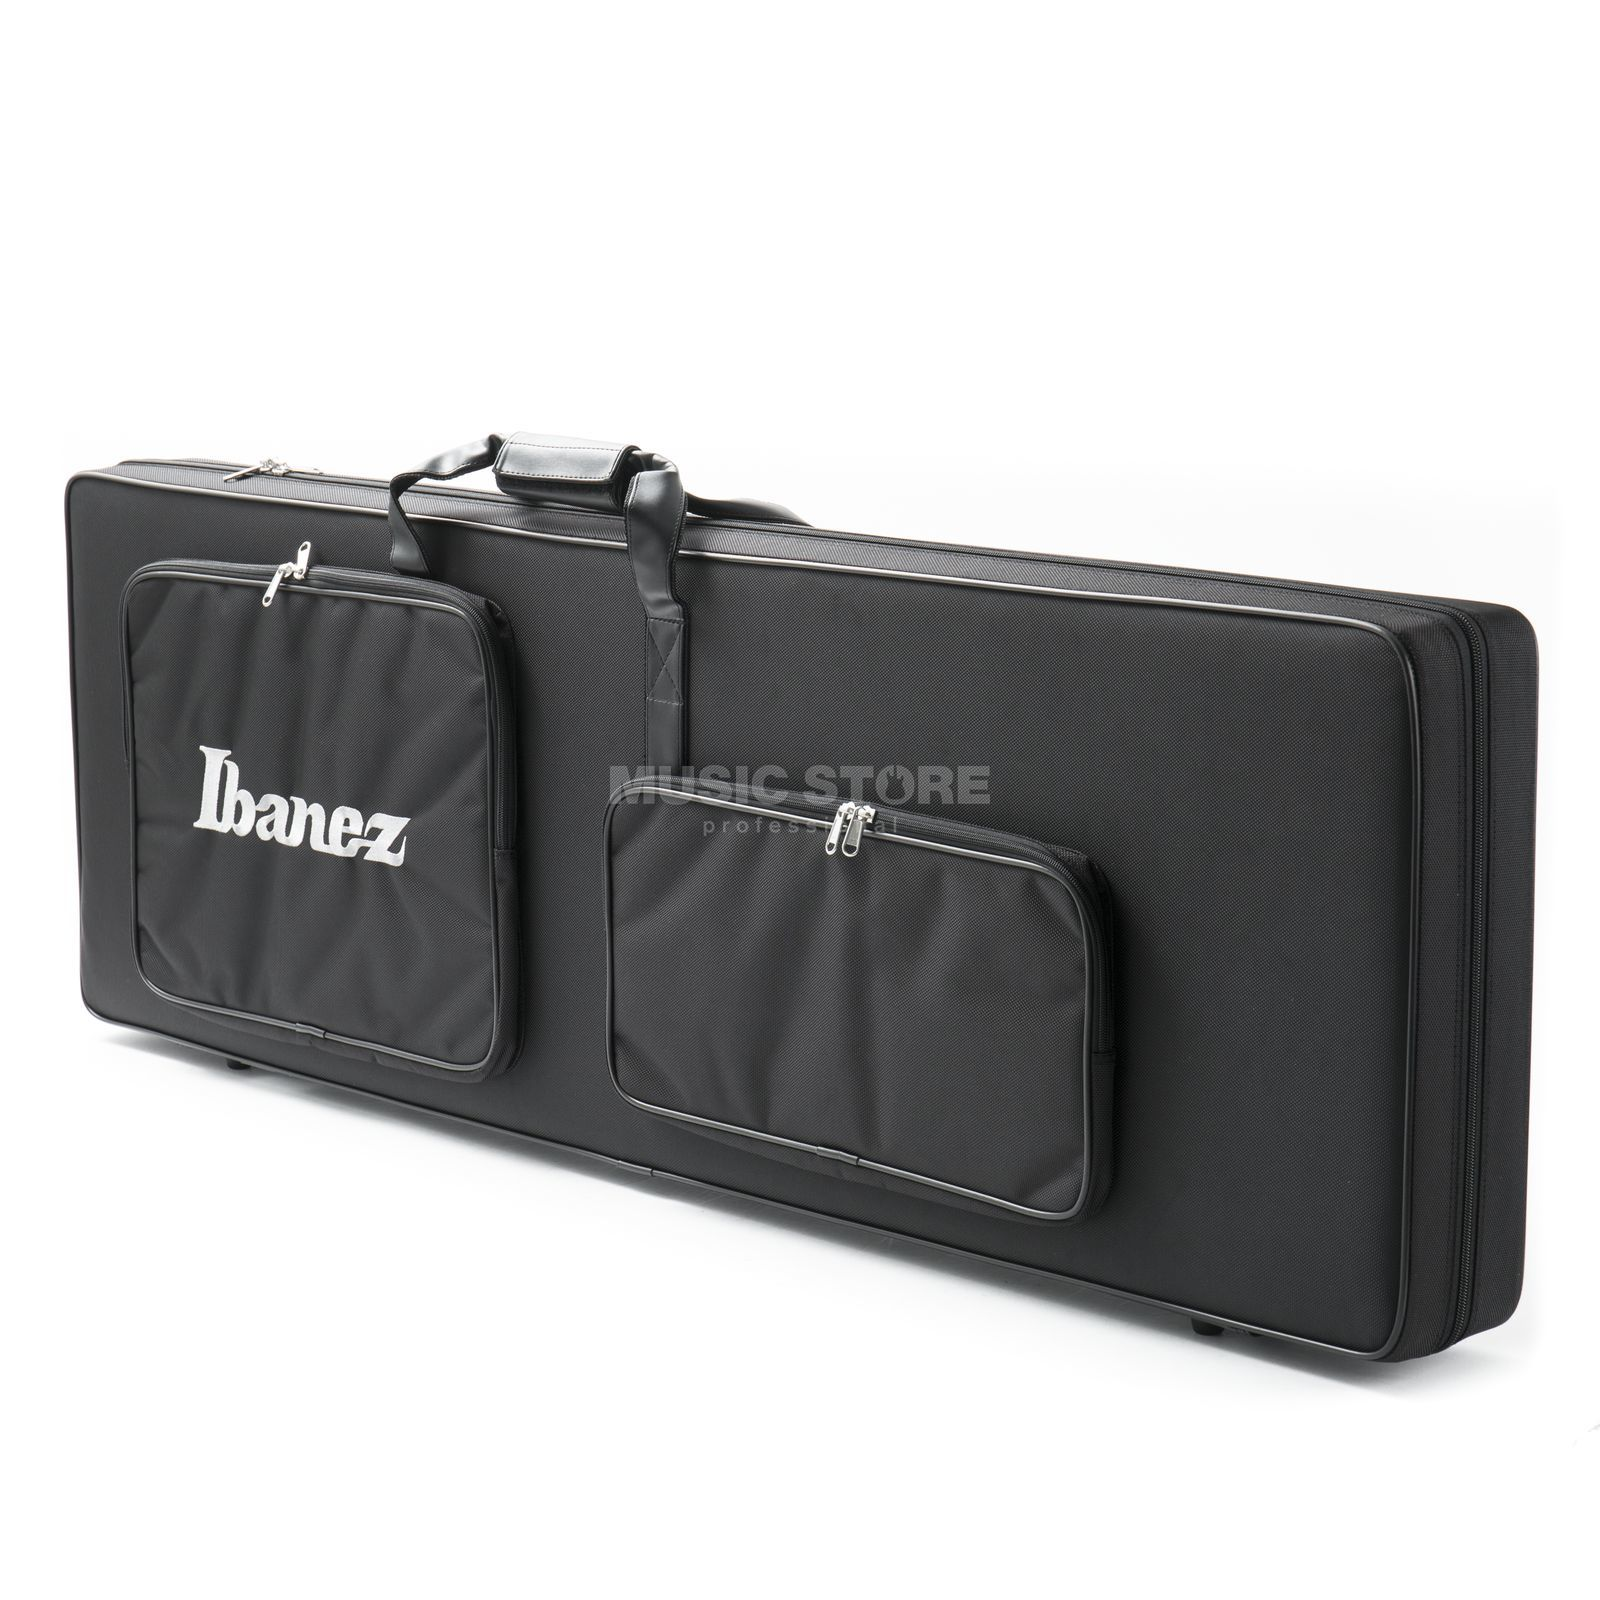 Ibanez M80MC 8-String Guitar Case Productafbeelding